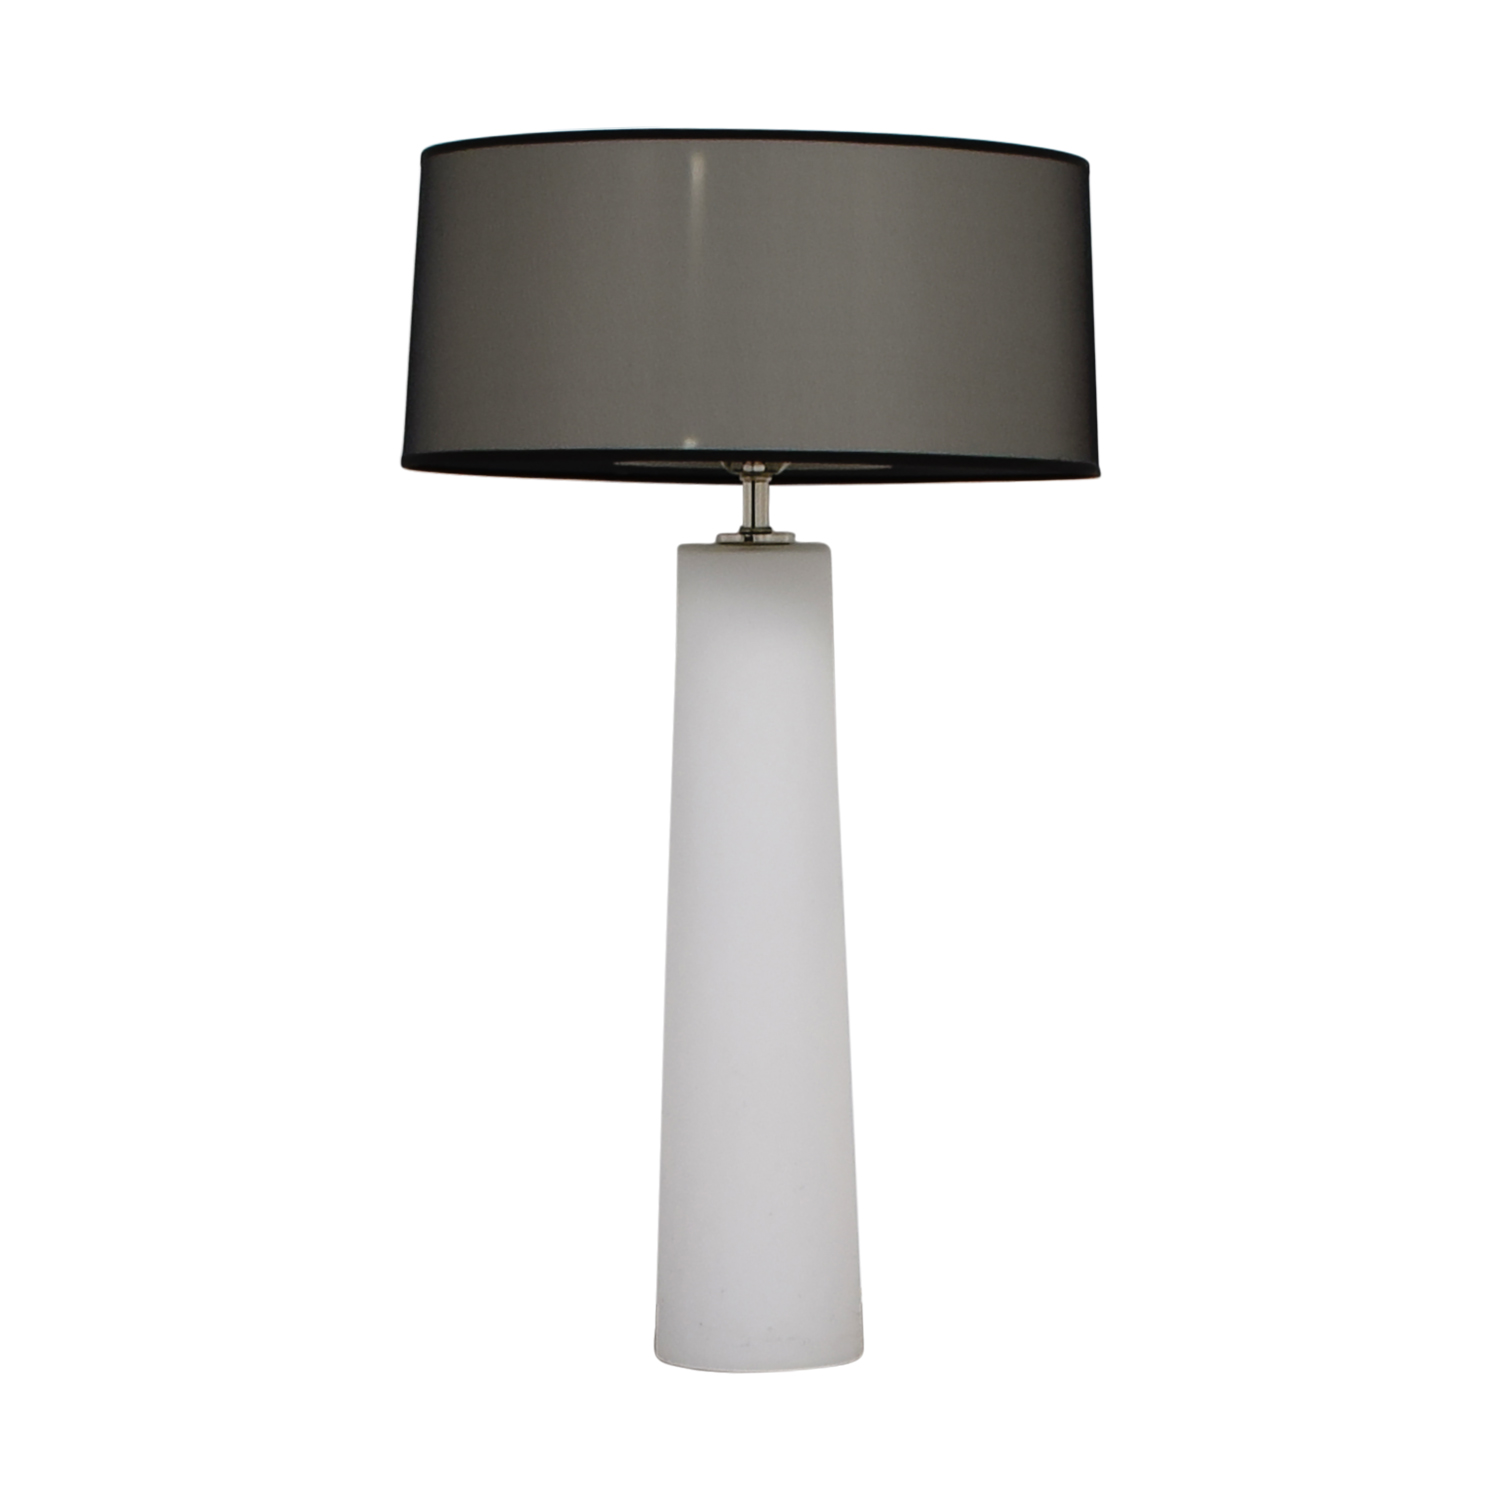 White Bedside Lamp with Base and Top Lighting sale